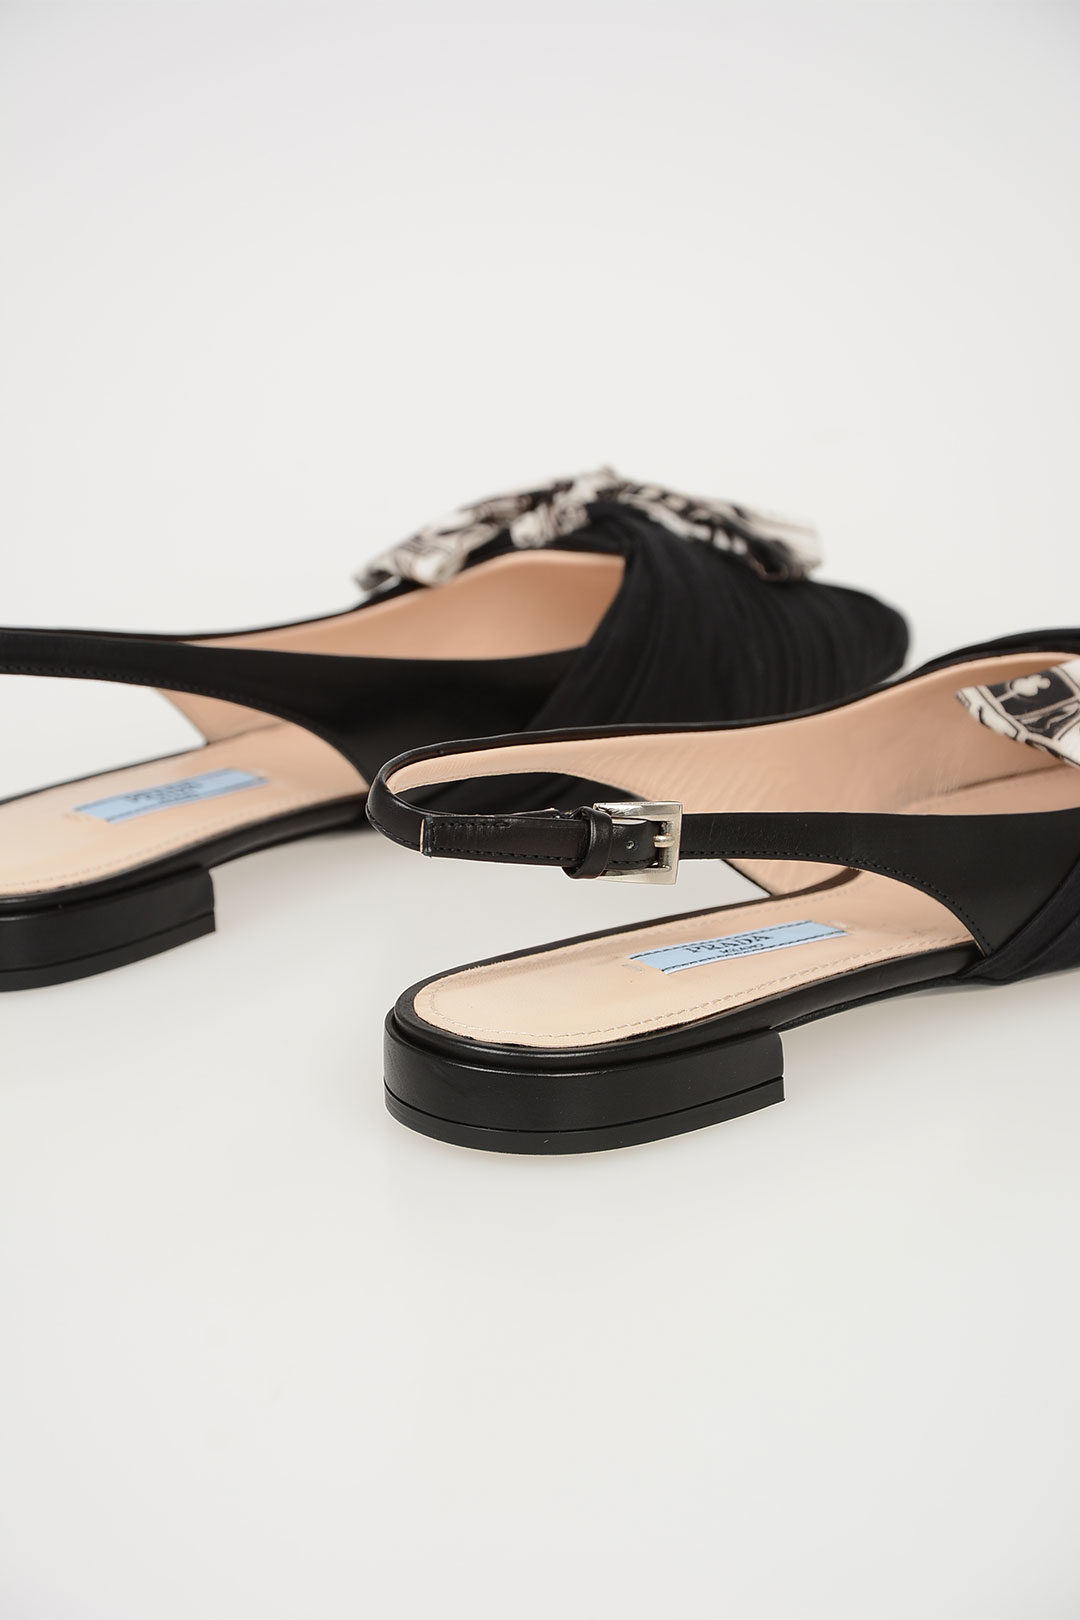 125ff0d0708 Prada Fabric and Leather Slingback Ballet Flats women - Glamood Outlet